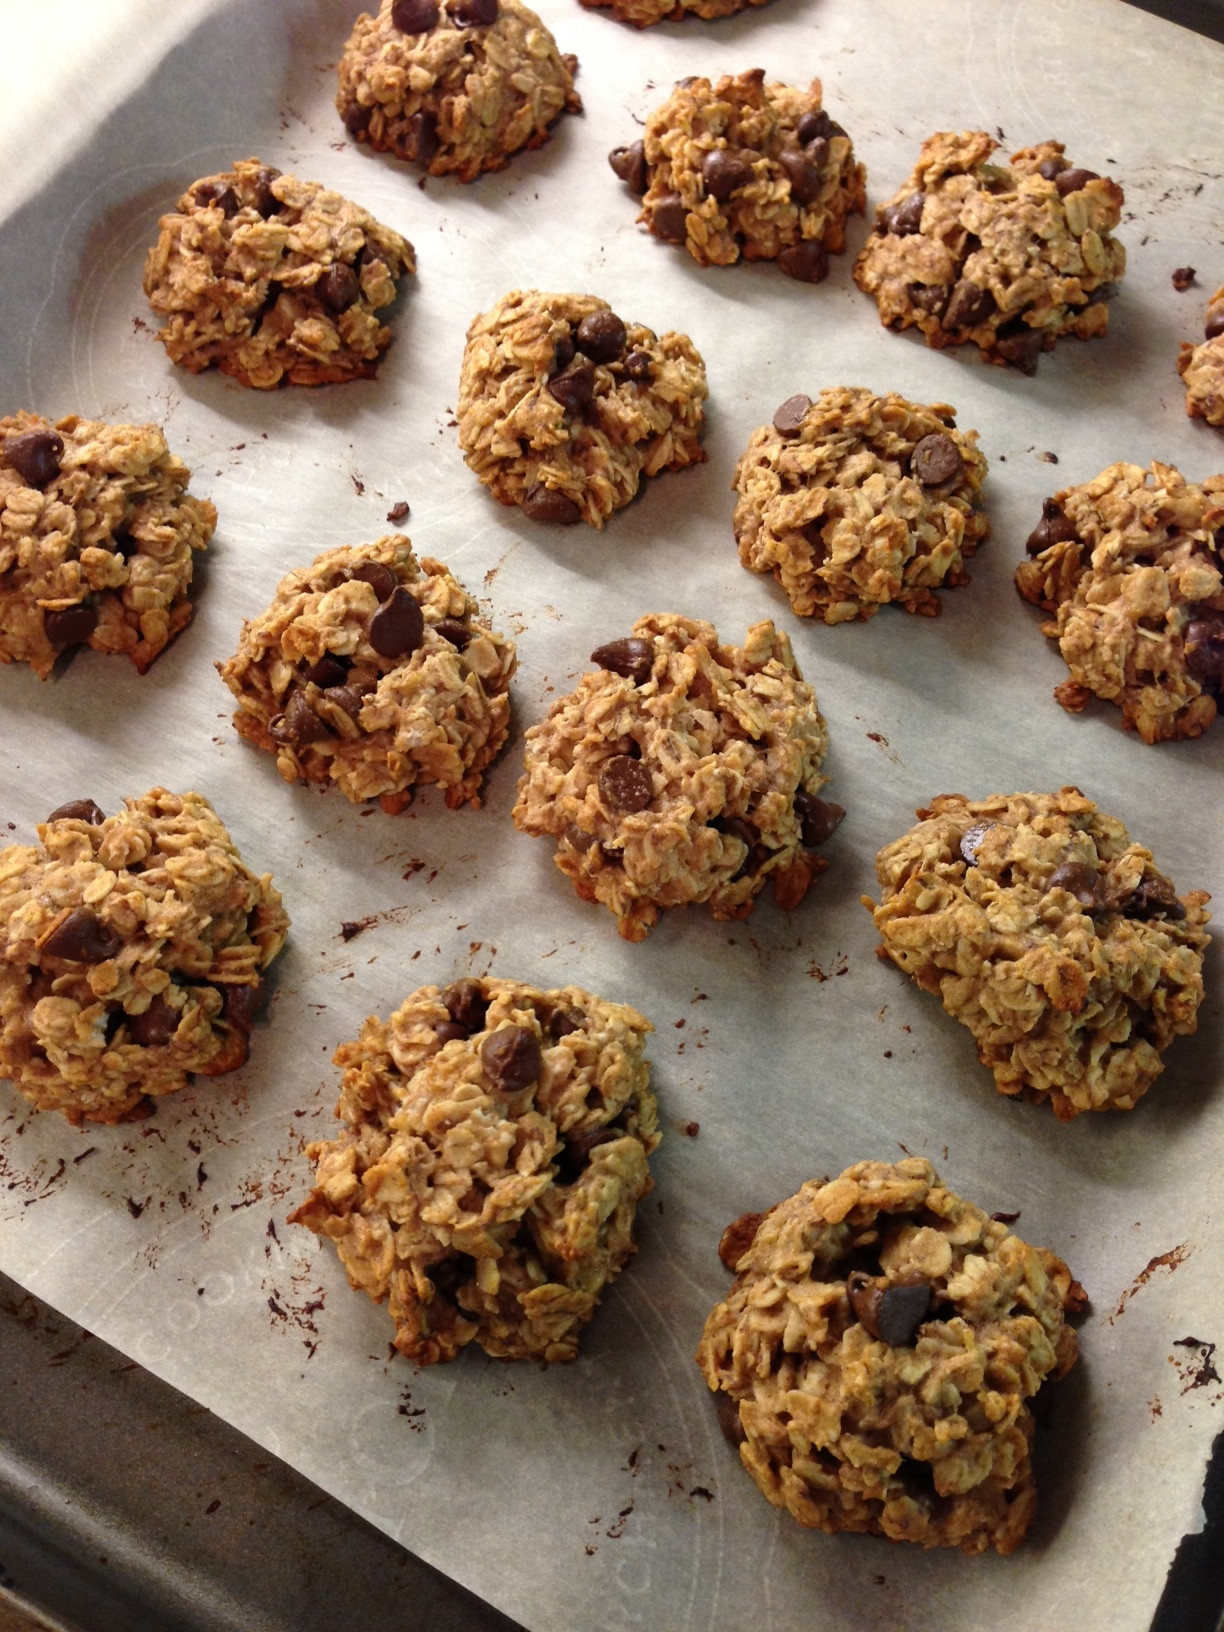 Healthy Oatmeal Coconut Chocolate Chip Cookies  Healthy Oatmeal Chocolate Chip Cookies Lauren Follett